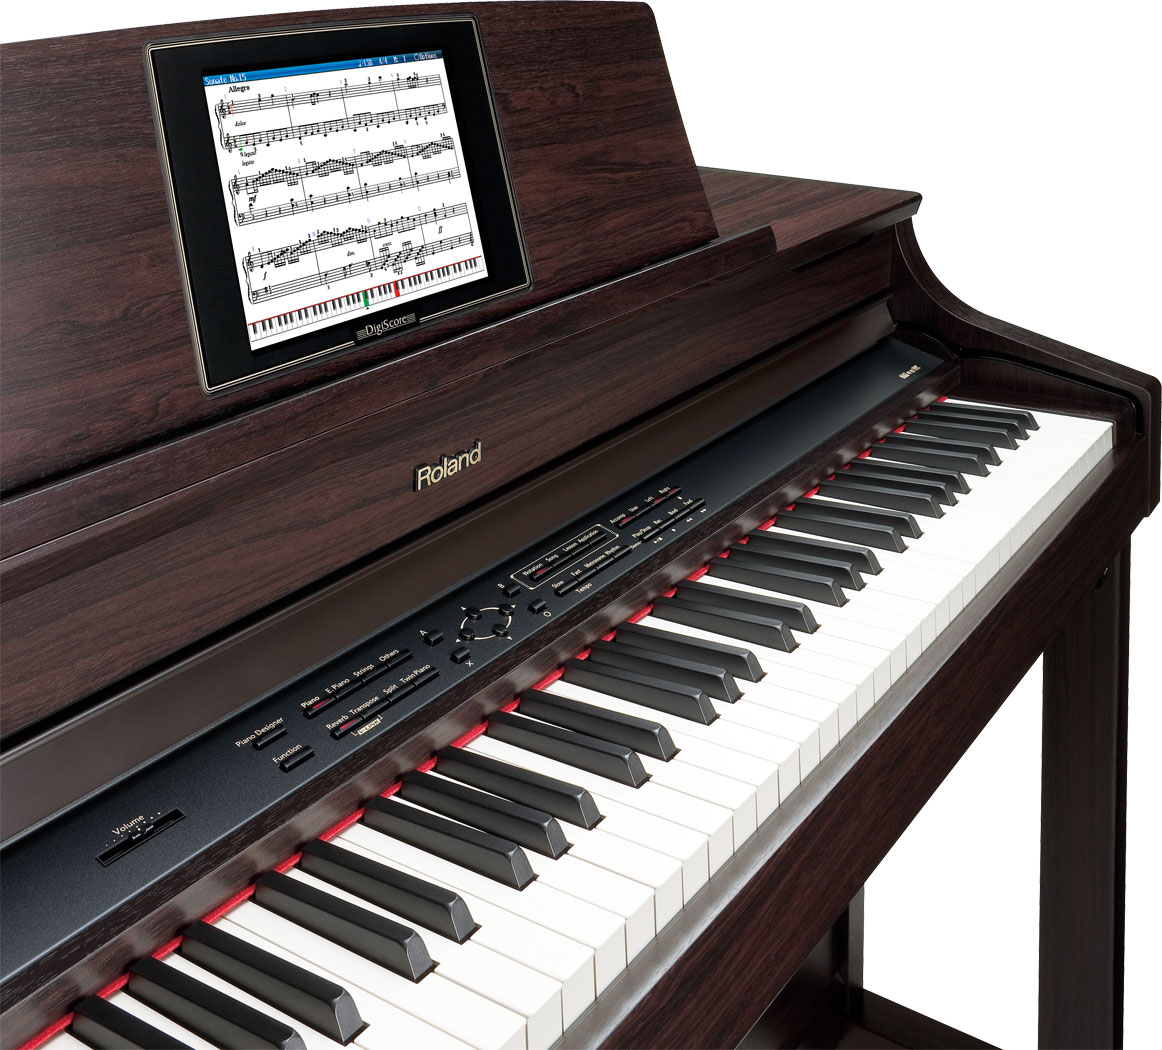 roland hpi 7f digital piano. Black Bedroom Furniture Sets. Home Design Ideas